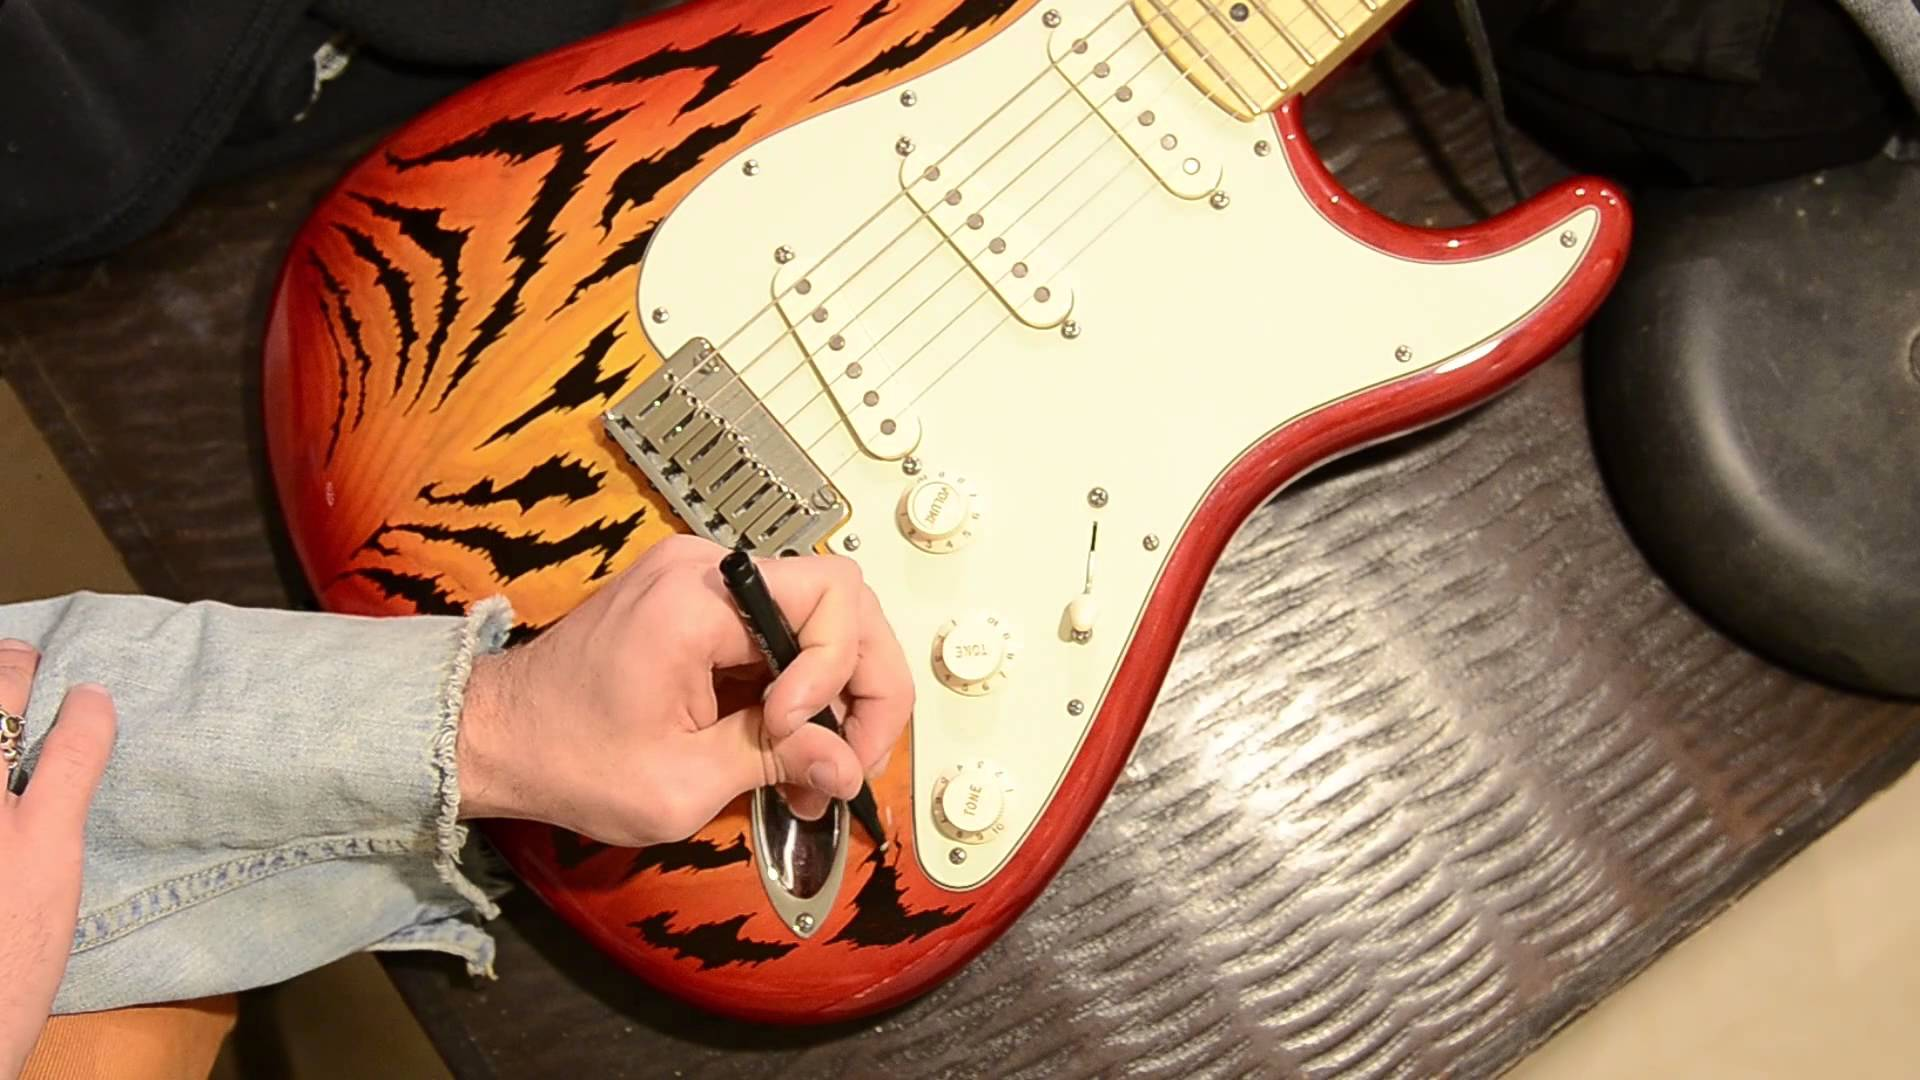 Drawn guitar magic marker In my on Stratocaster my